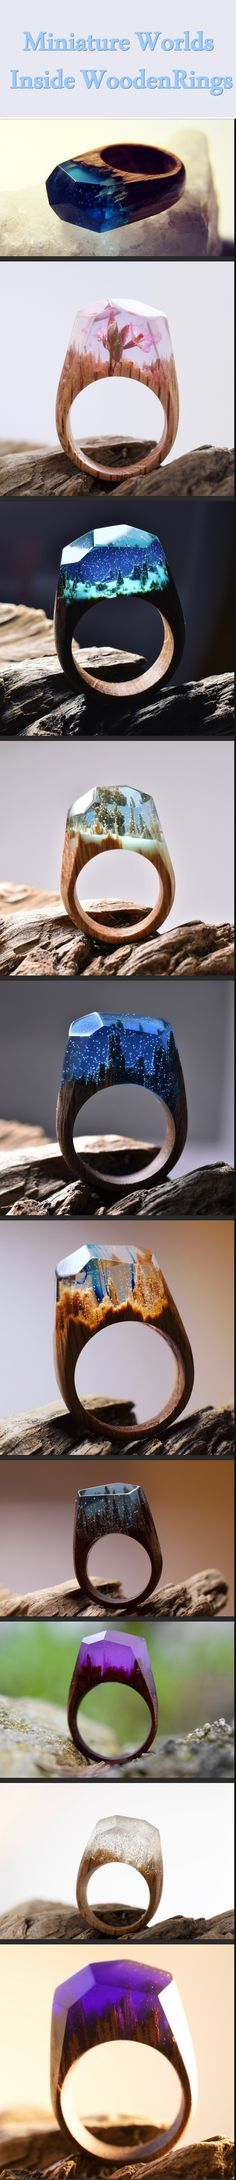 Wooden Rings With A Miniature World Inside.